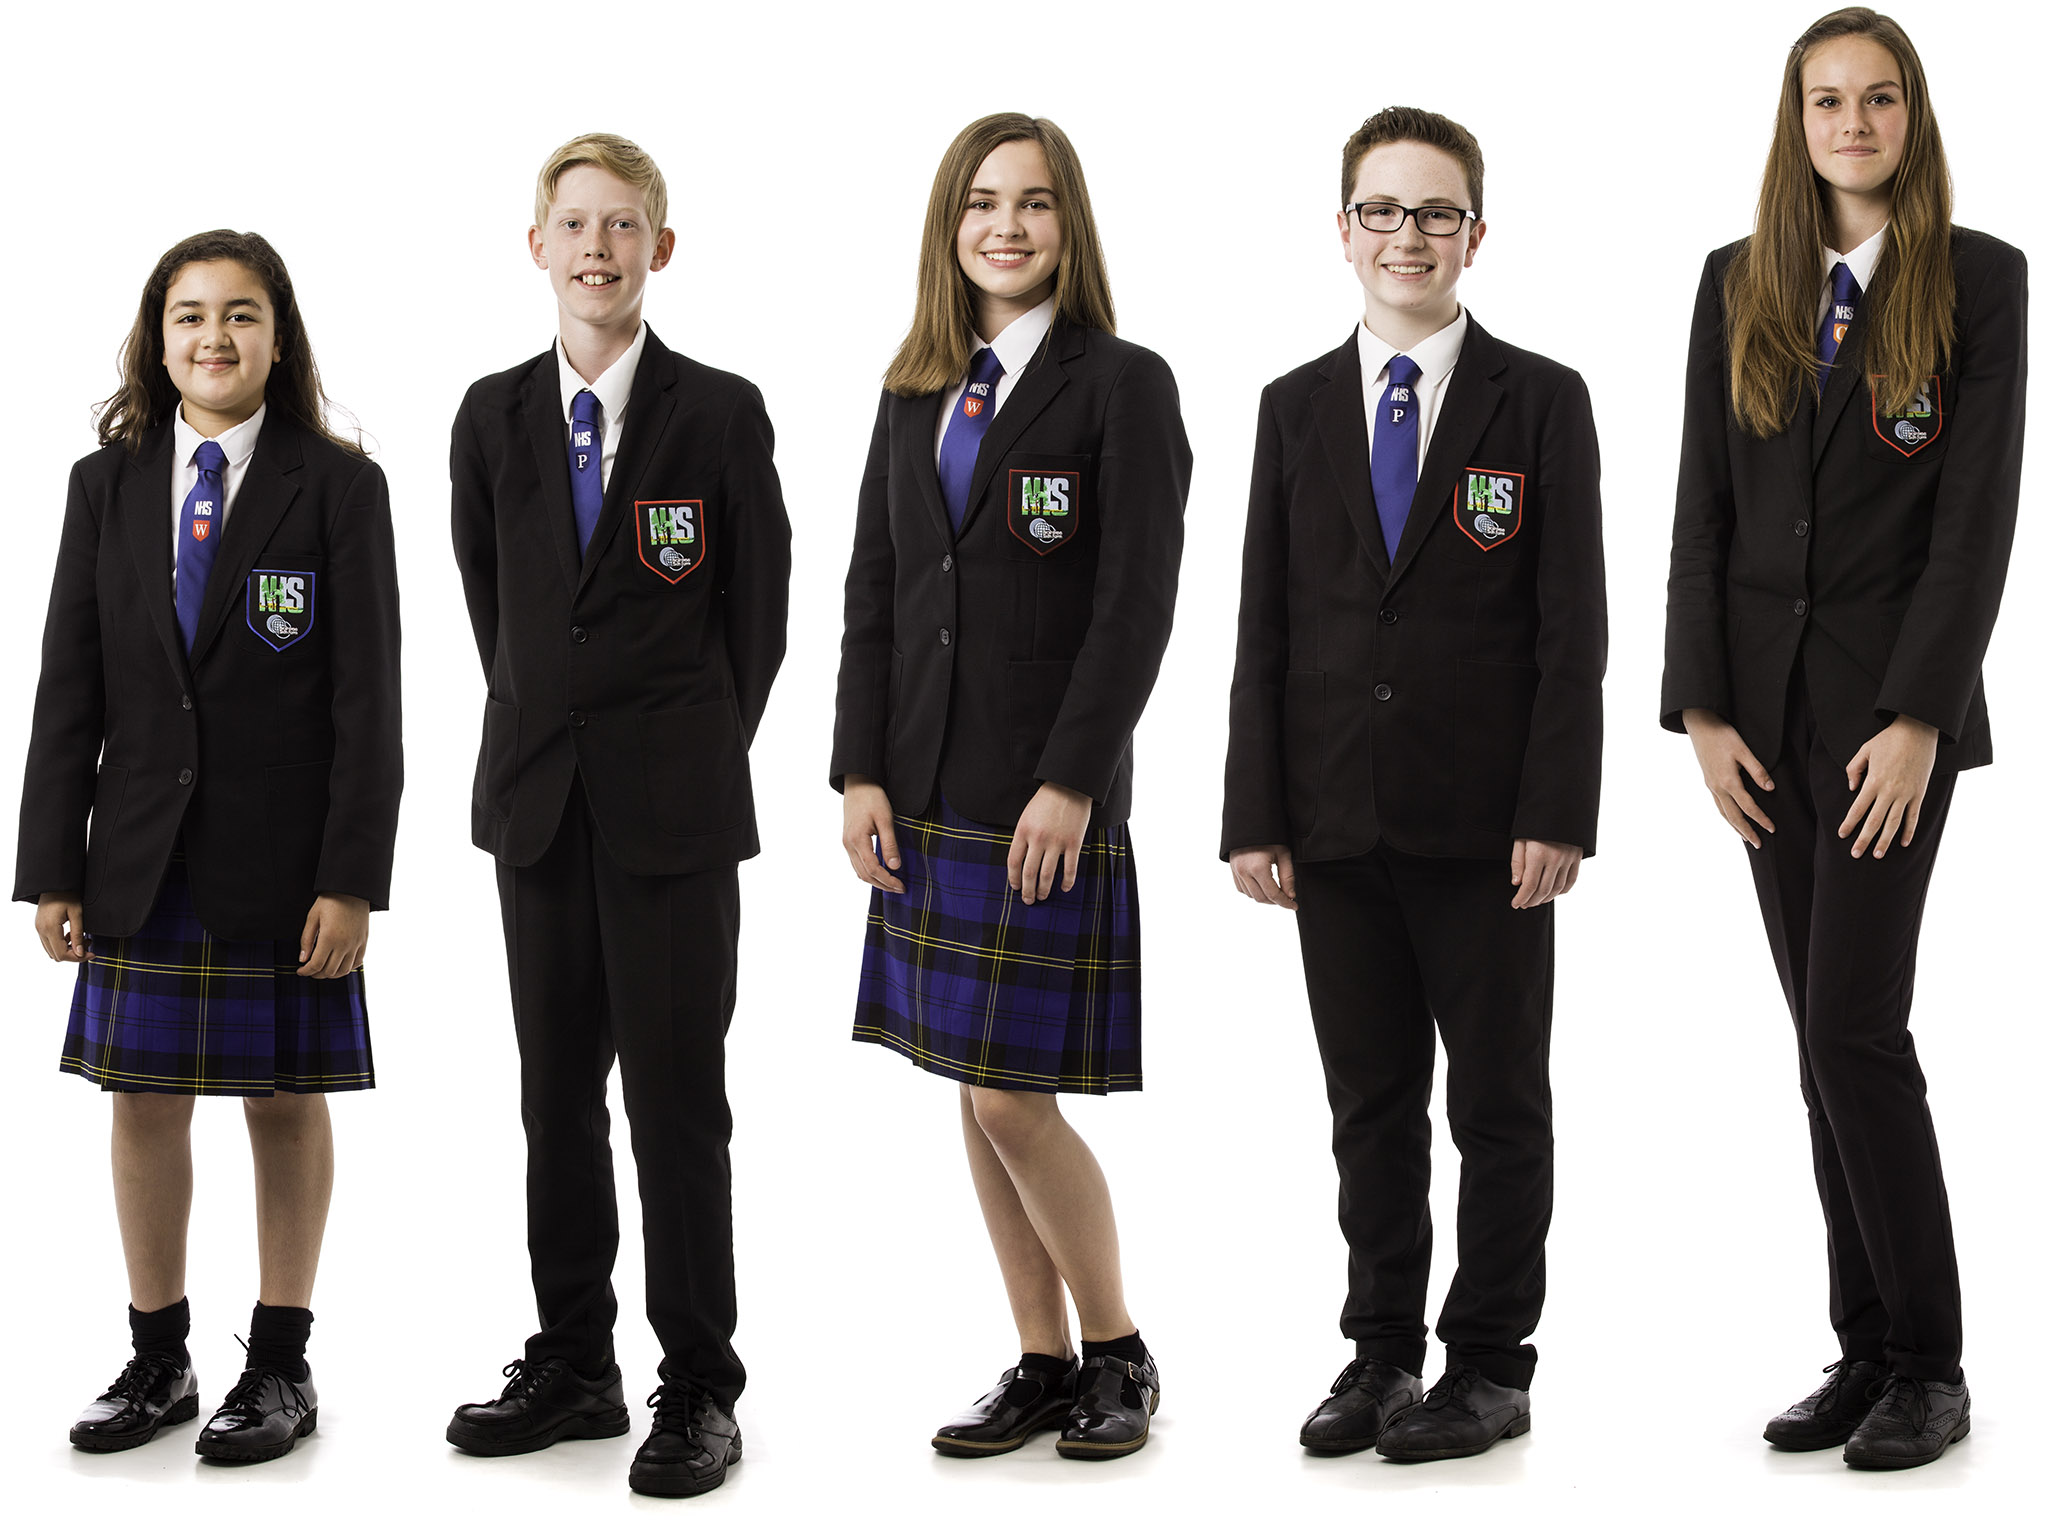 School uniforms for boys and girls in all sizes and styles at the best prices online.